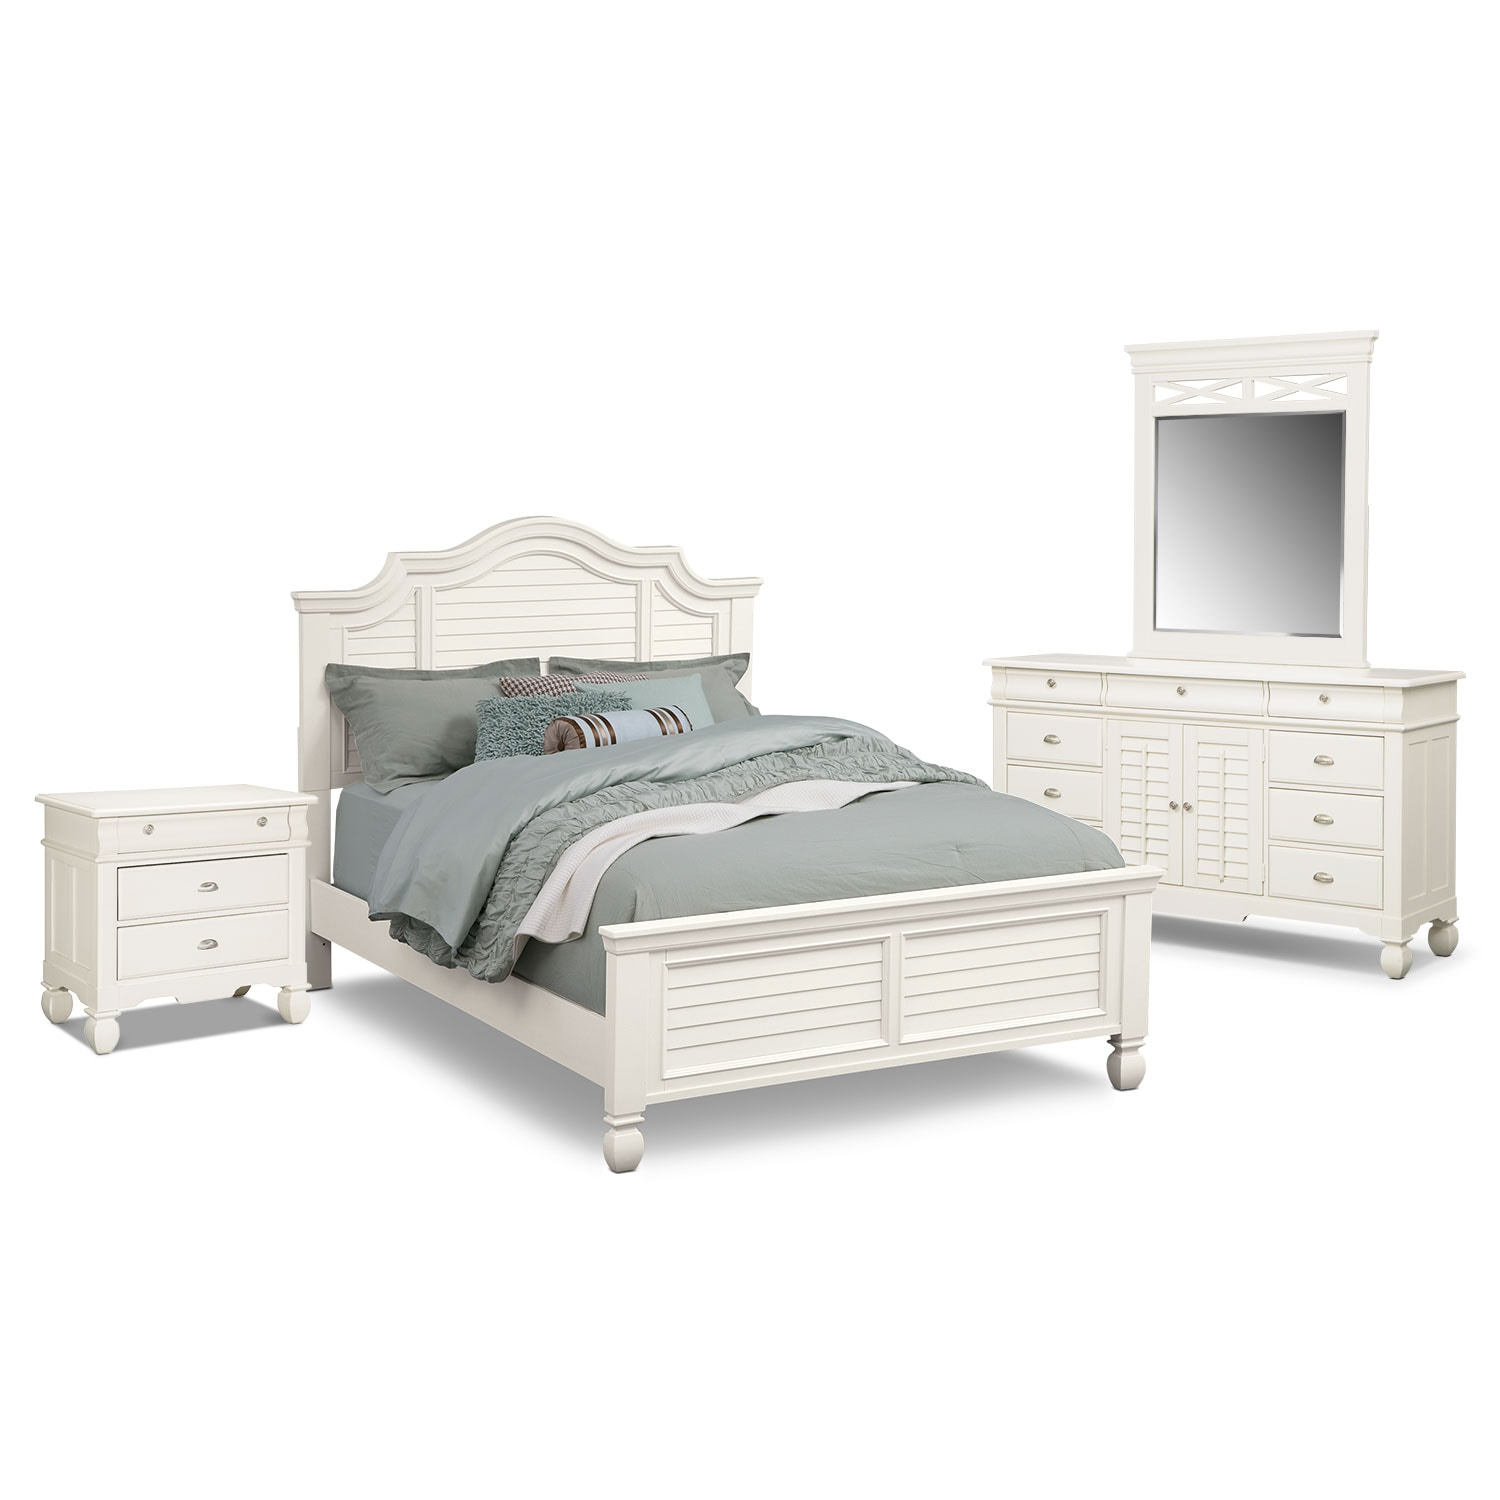 Bedroom Furniture - Plantation Cove 6-Piece King Panel Bedroom Set - White